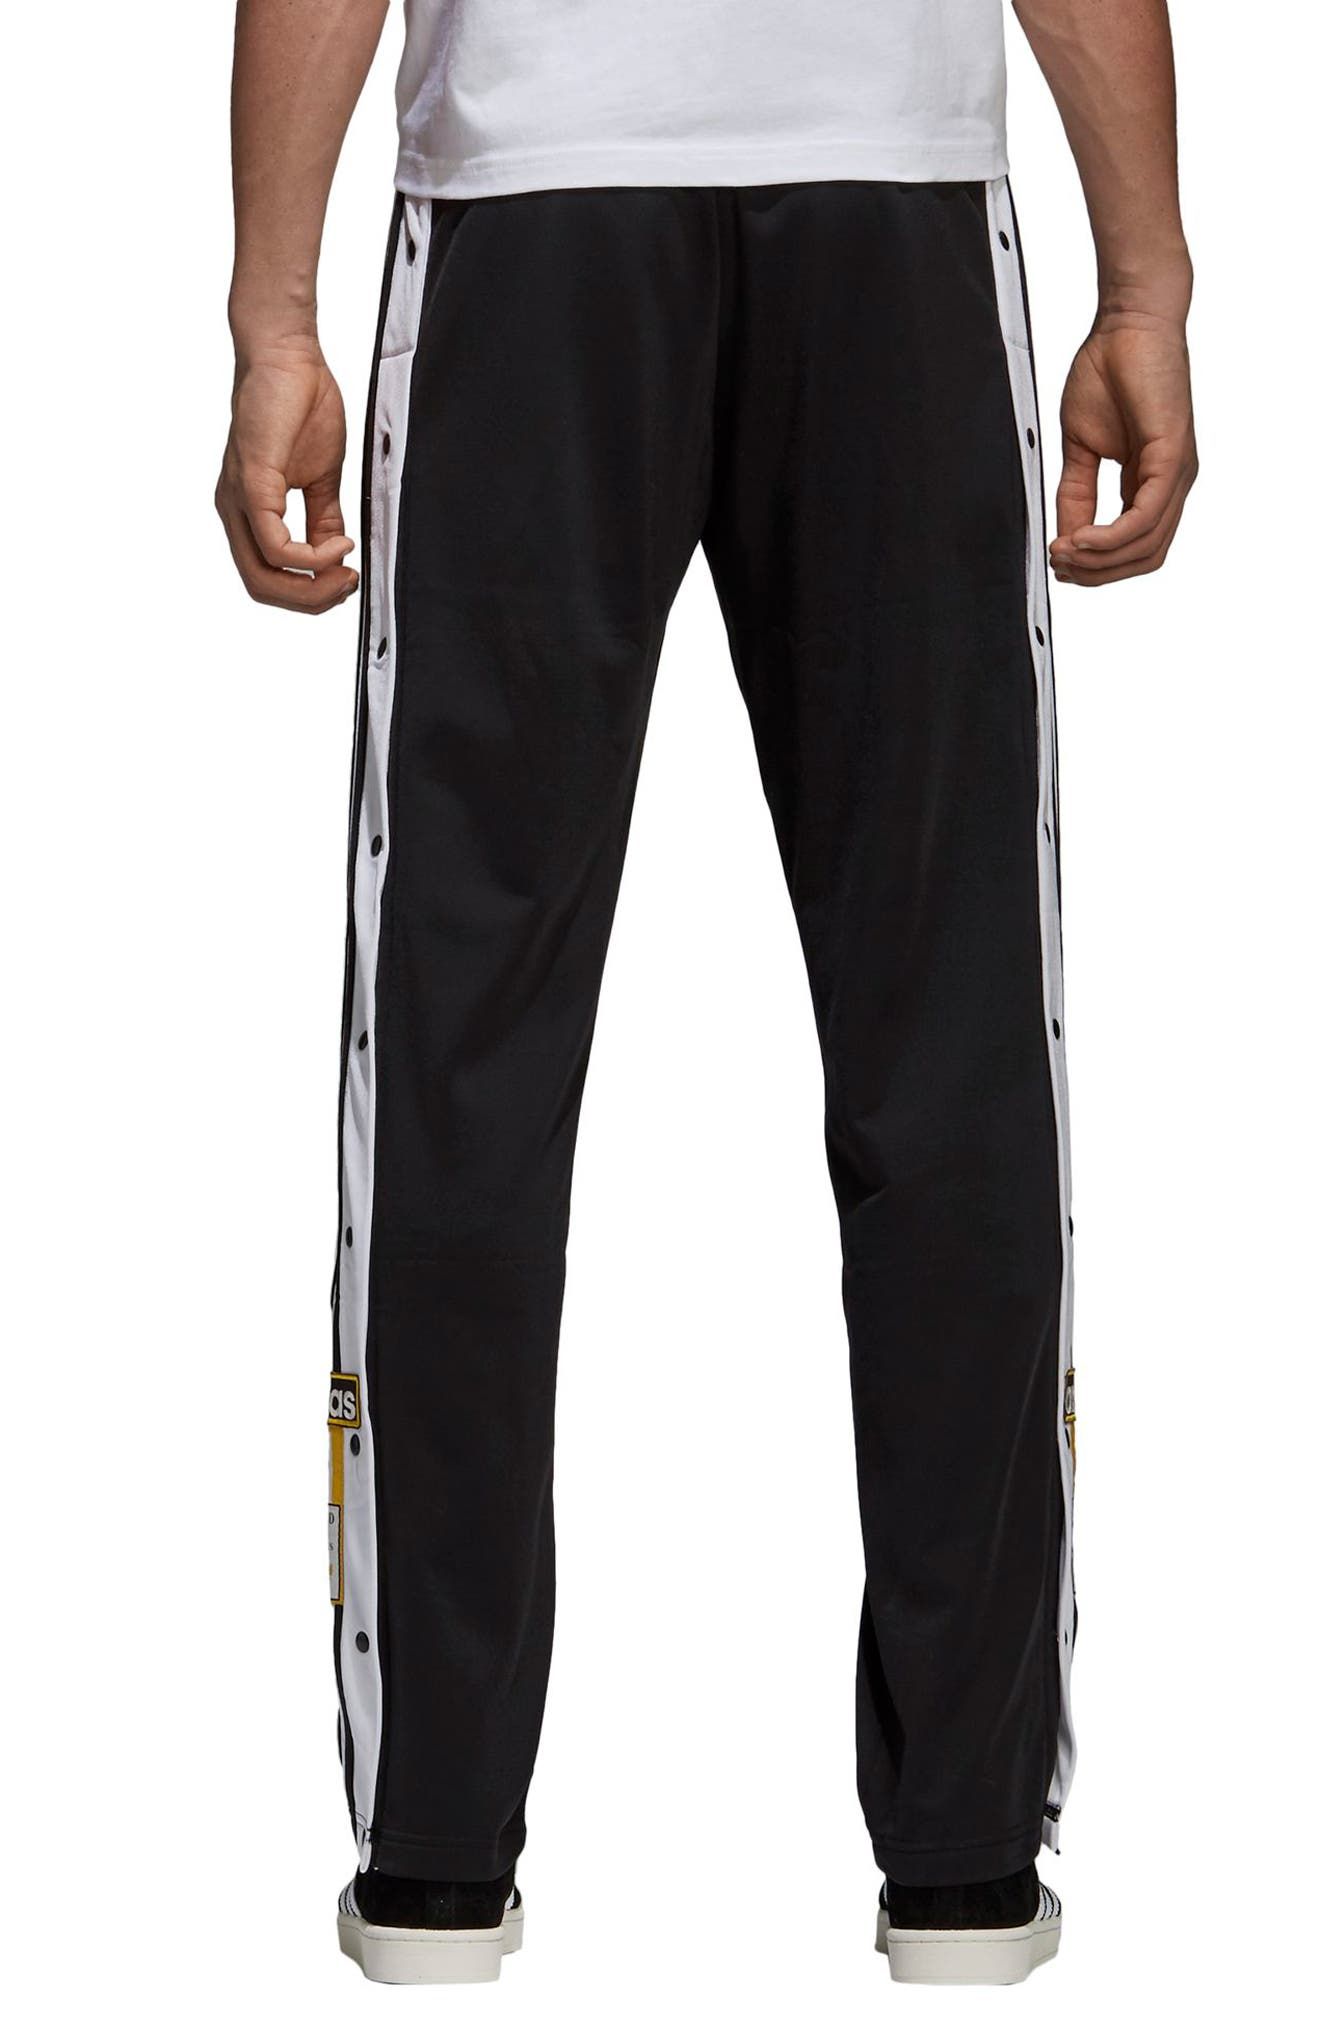 ADIDAS ORIGINALS,                             Adibreak Track Pants,                             Alternate thumbnail 2, color,                             001